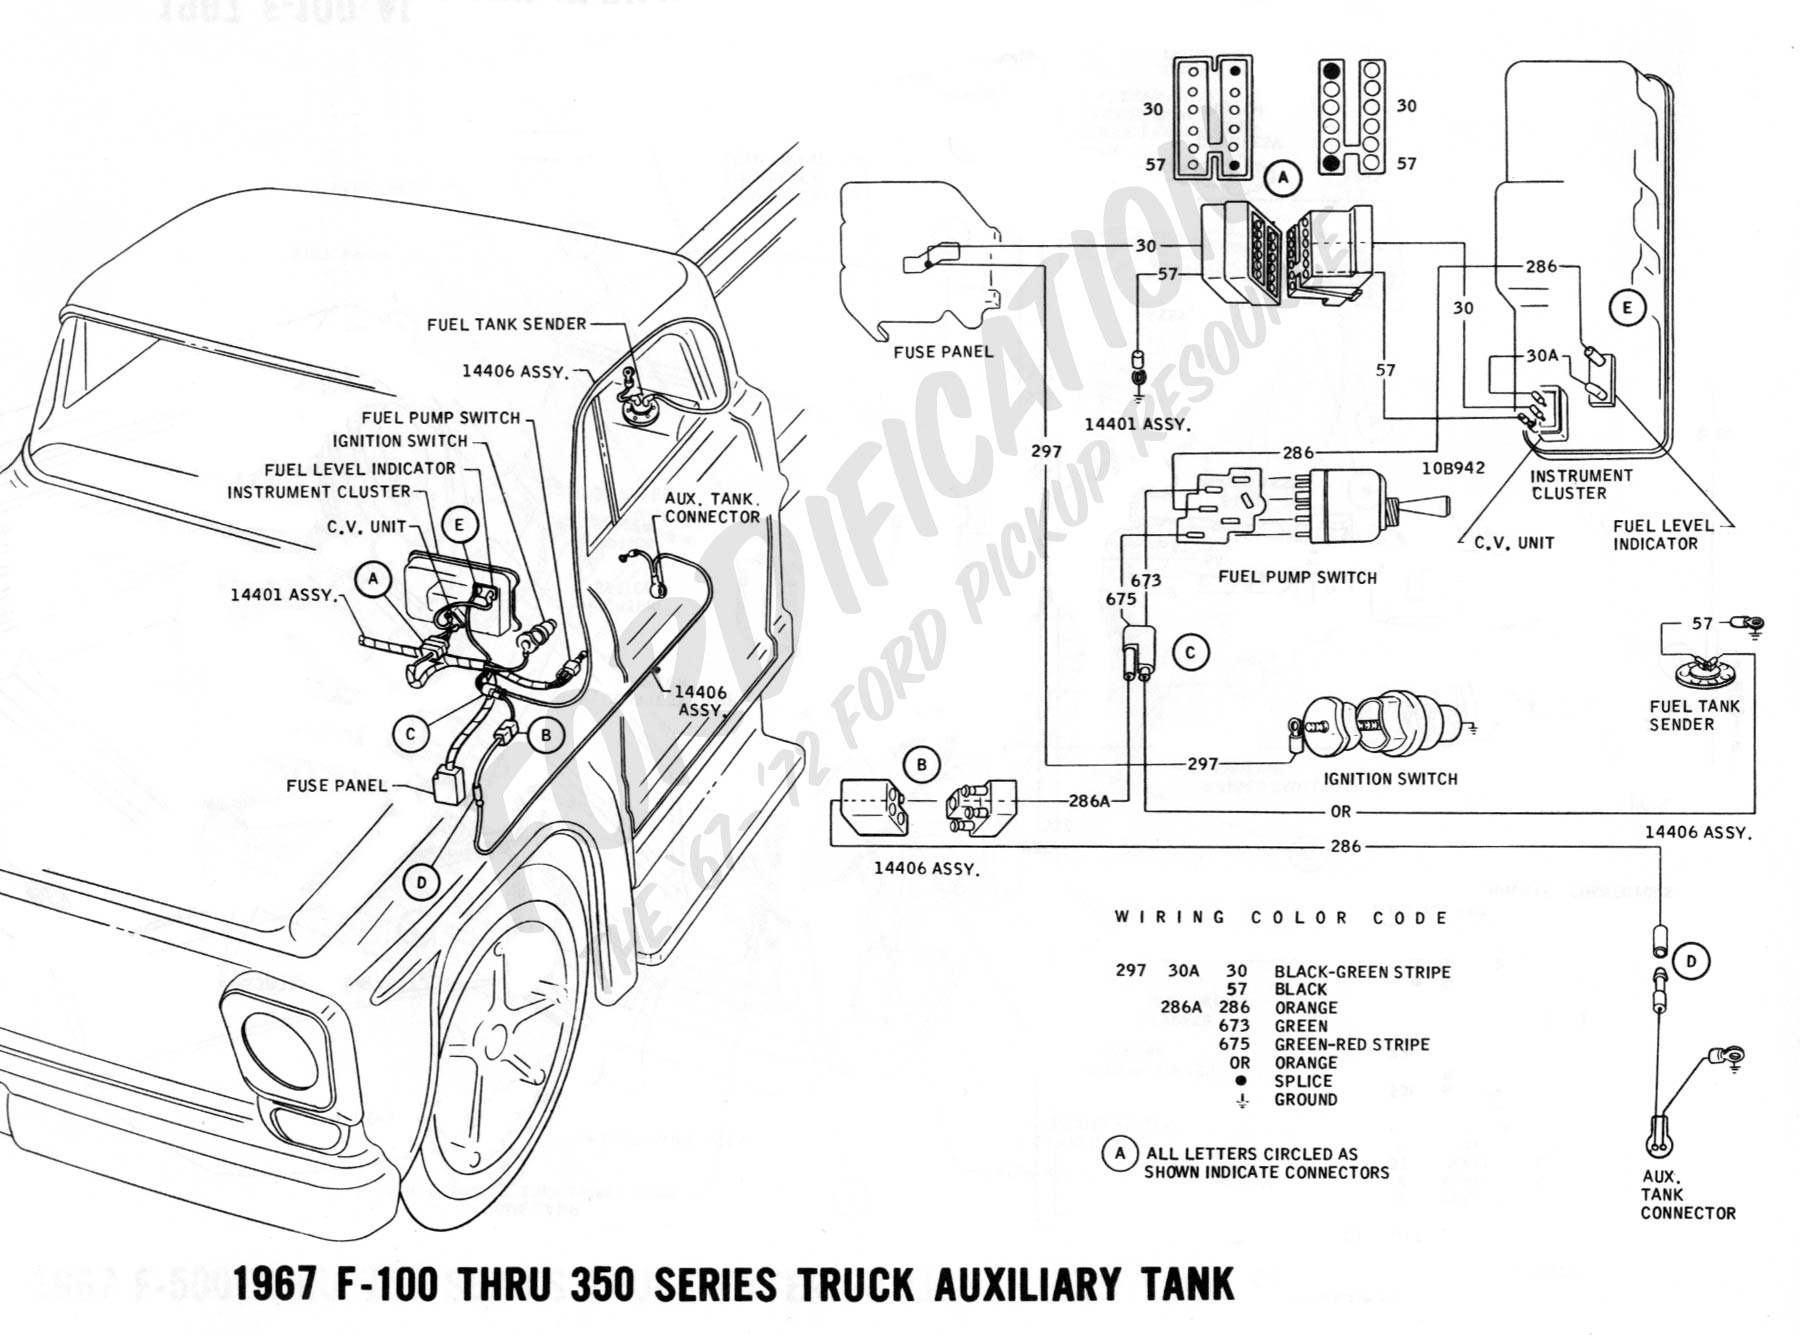 chevy 3500 windshield washer pump diagram